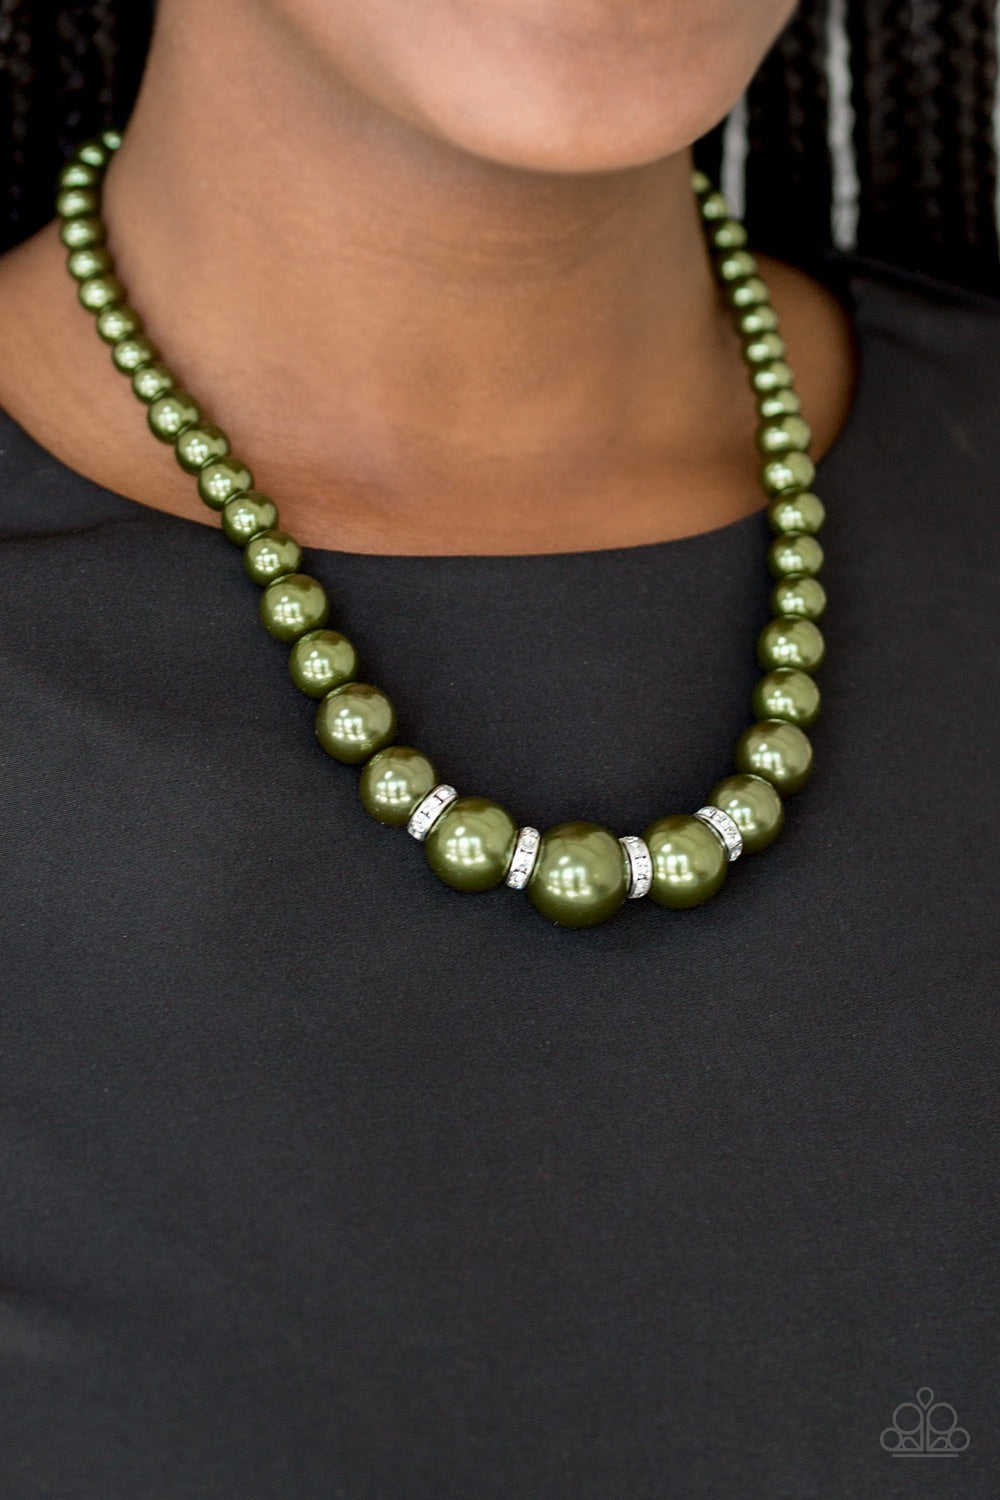 buy Party Pearls - Green Pearl Paparazzi Jewelry Necklace onlineNecklacesaffordable, bling, dainty, dazzling, glittery, green, love, mothers day, necklace, paparazzi, pearls, rhinestones